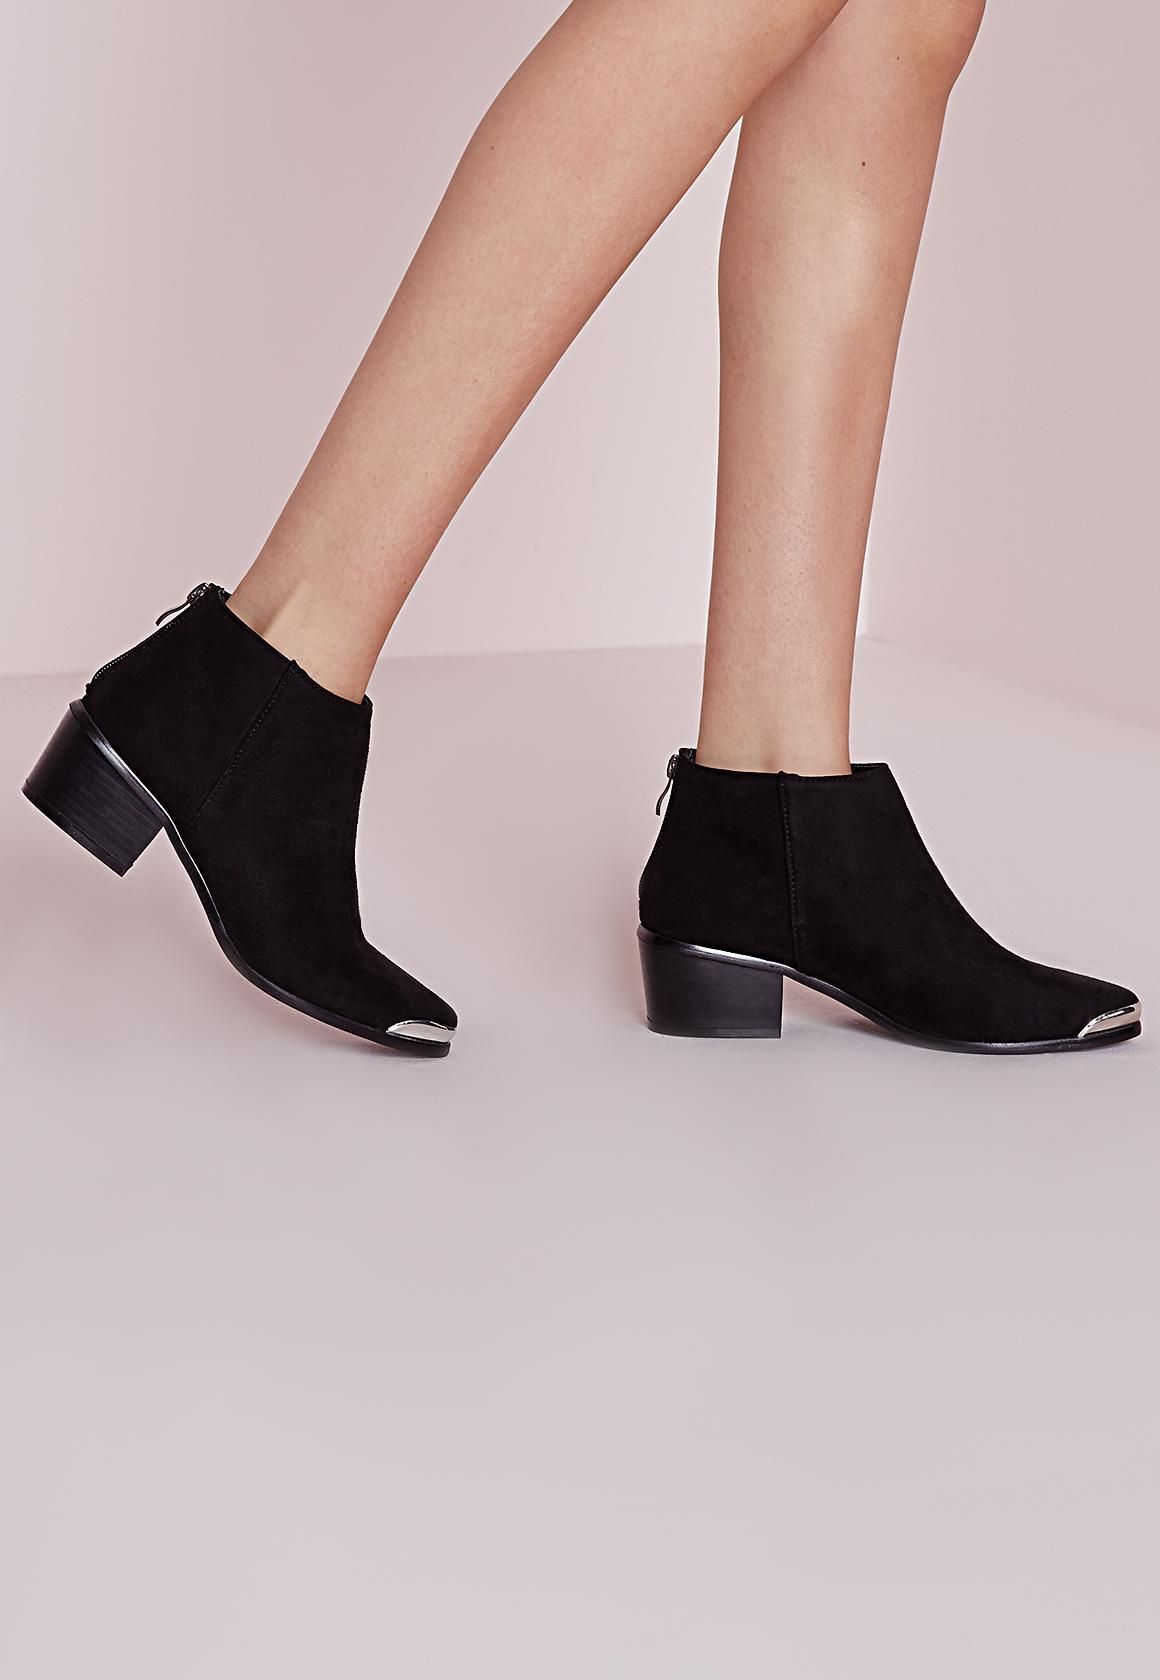 bottines plates noires style western bout pointu métal | missguided